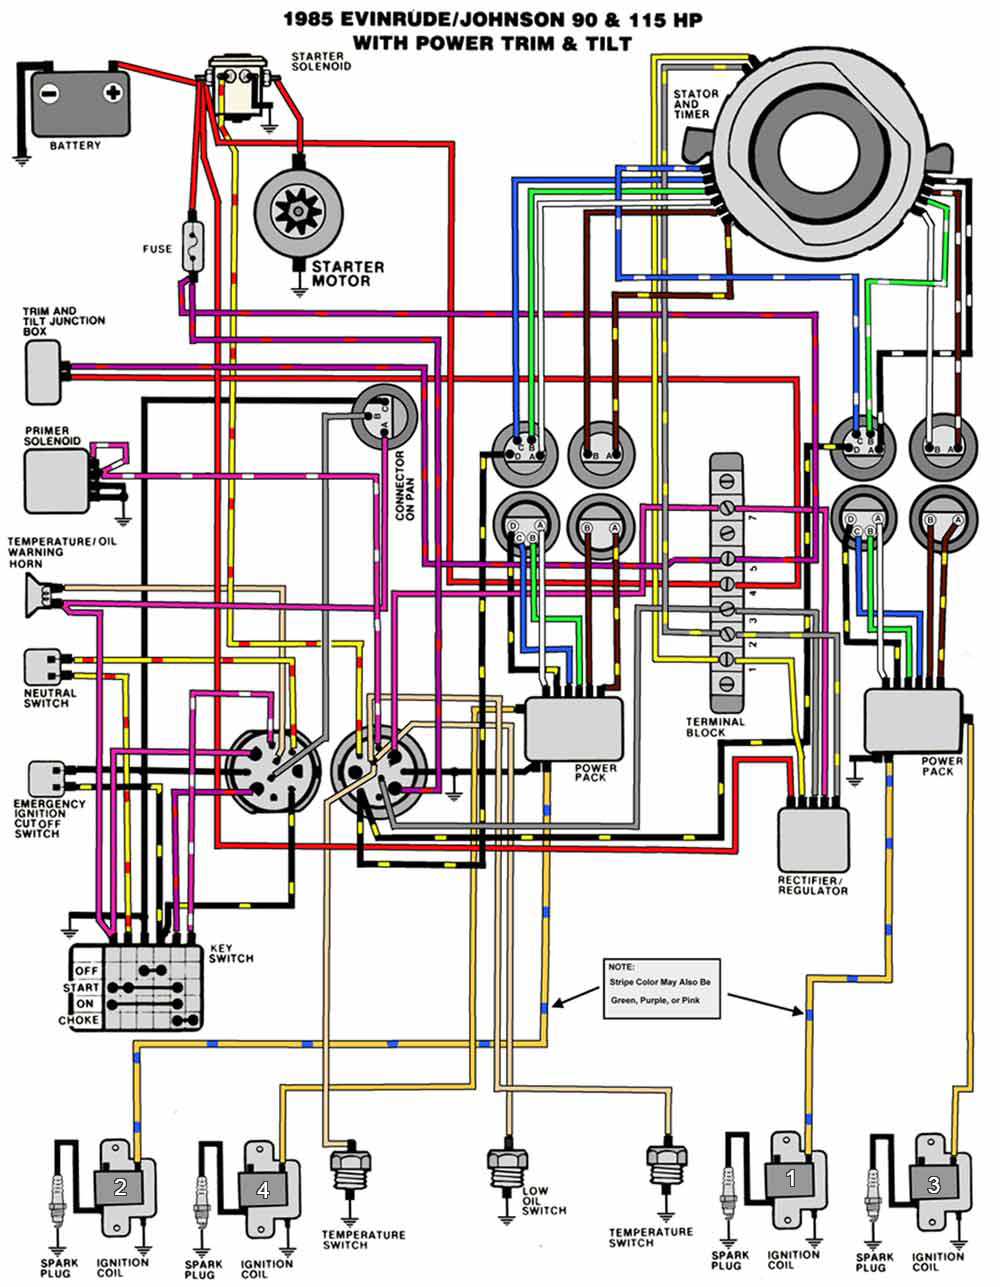 1985_90_115TnT evinrude vro wiring diagram 1990 omc wiring color codes \u2022 wiring OMC Sterndrive Identification at bayanpartner.co